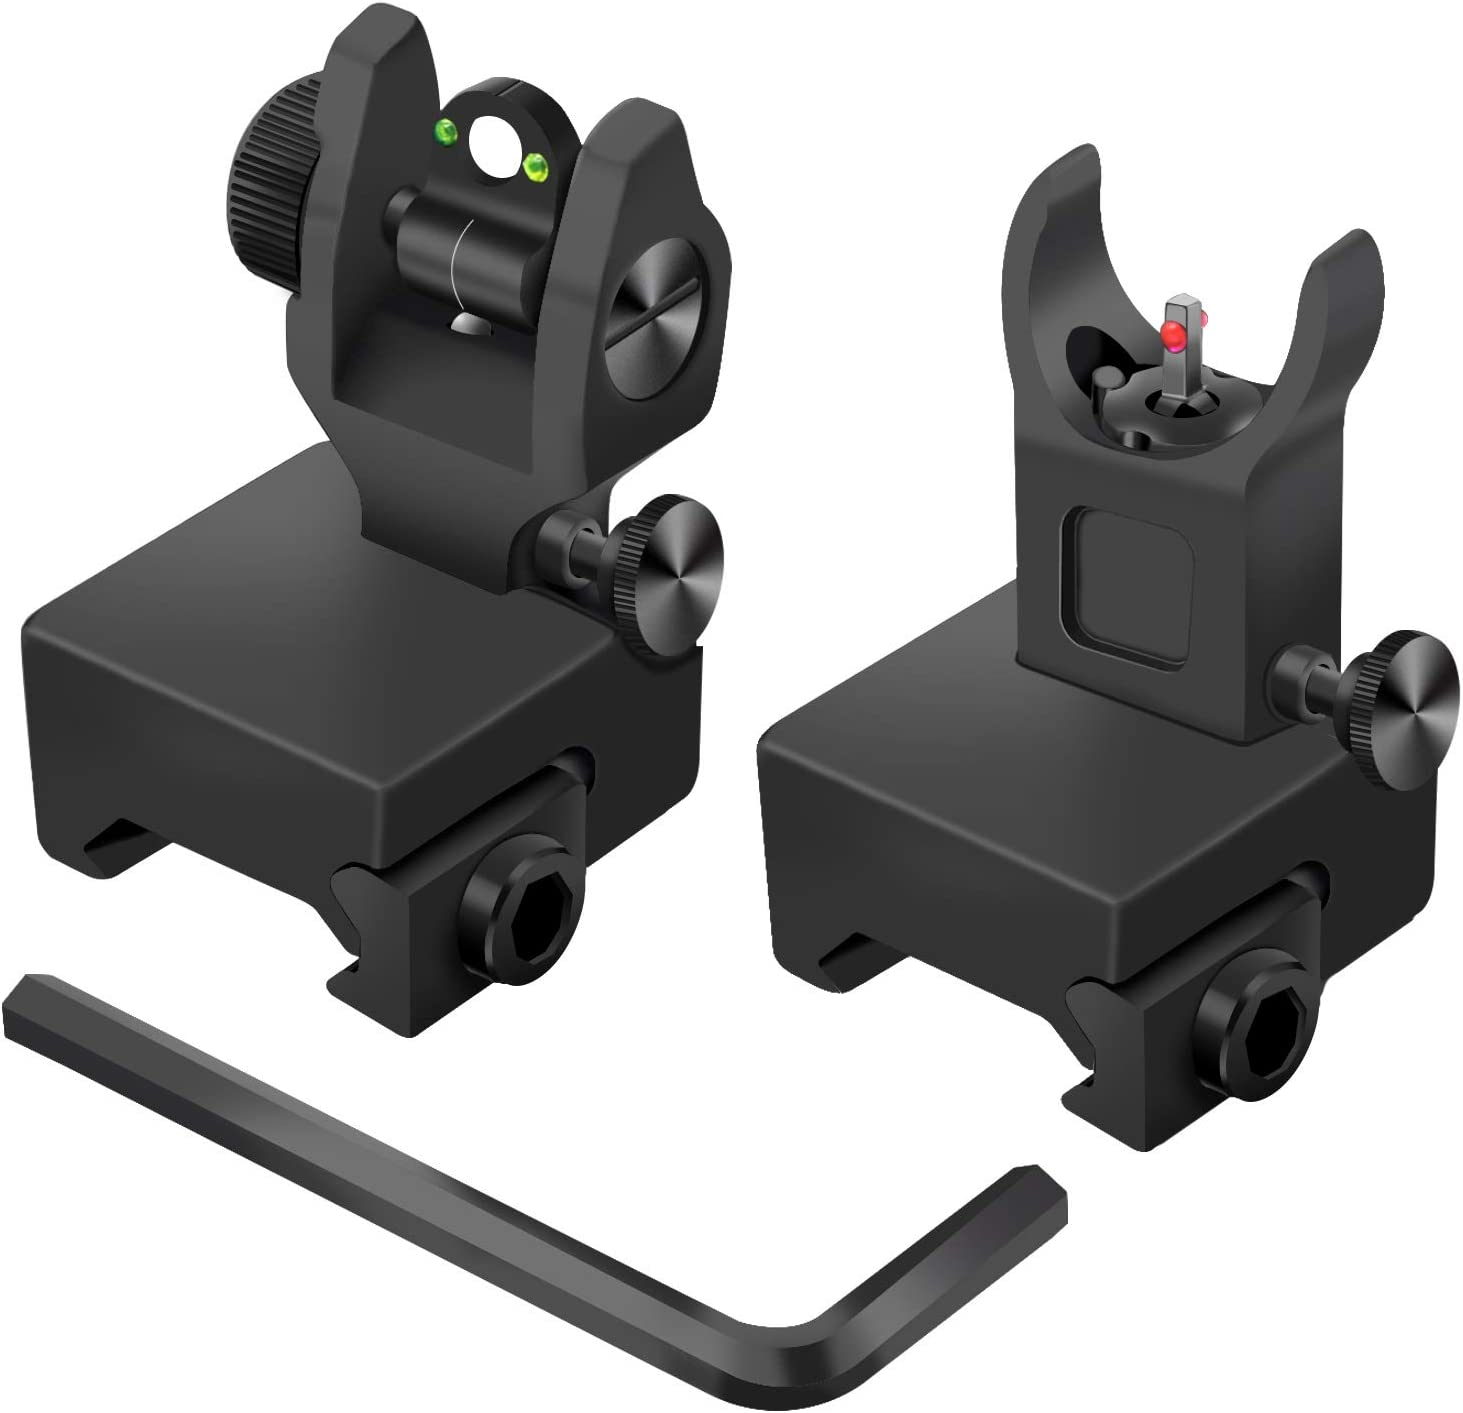 AWOTAC Tactical Fiber Optics Low Profile Sight Iron Flip Free shipping anywhere in the nation NEW before selling with up